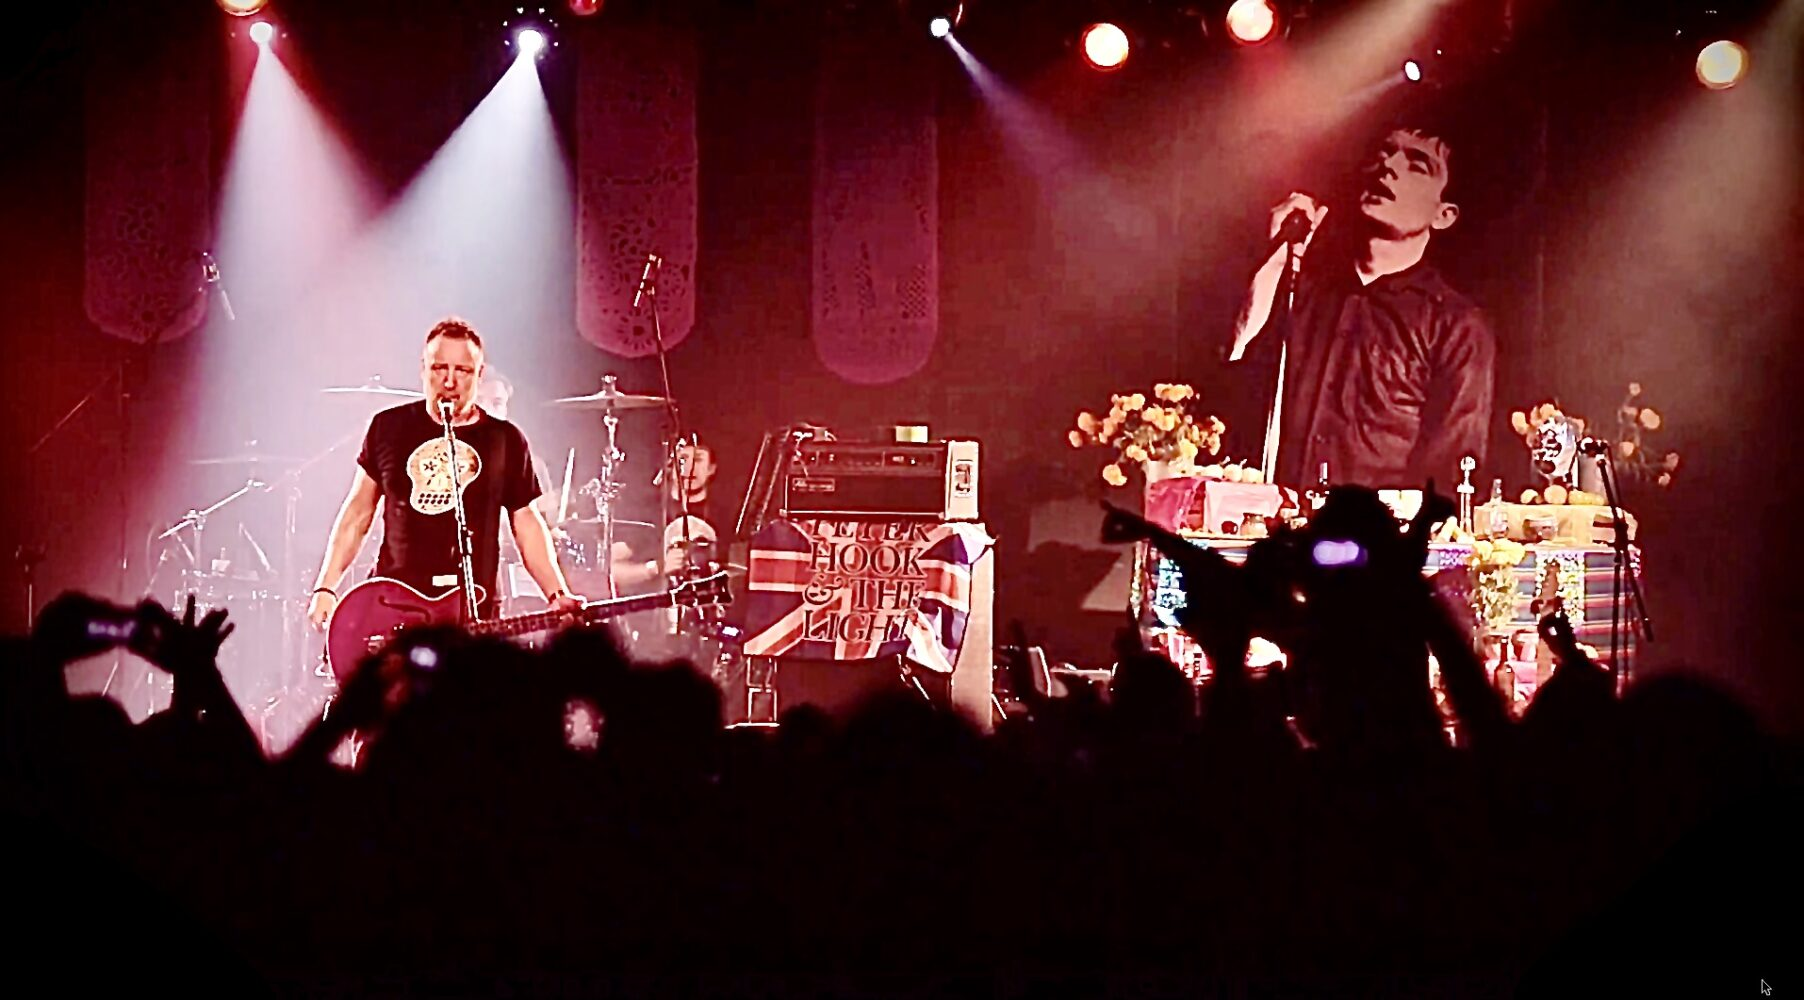 Peter Hook And The Light: Mexico City– live stream